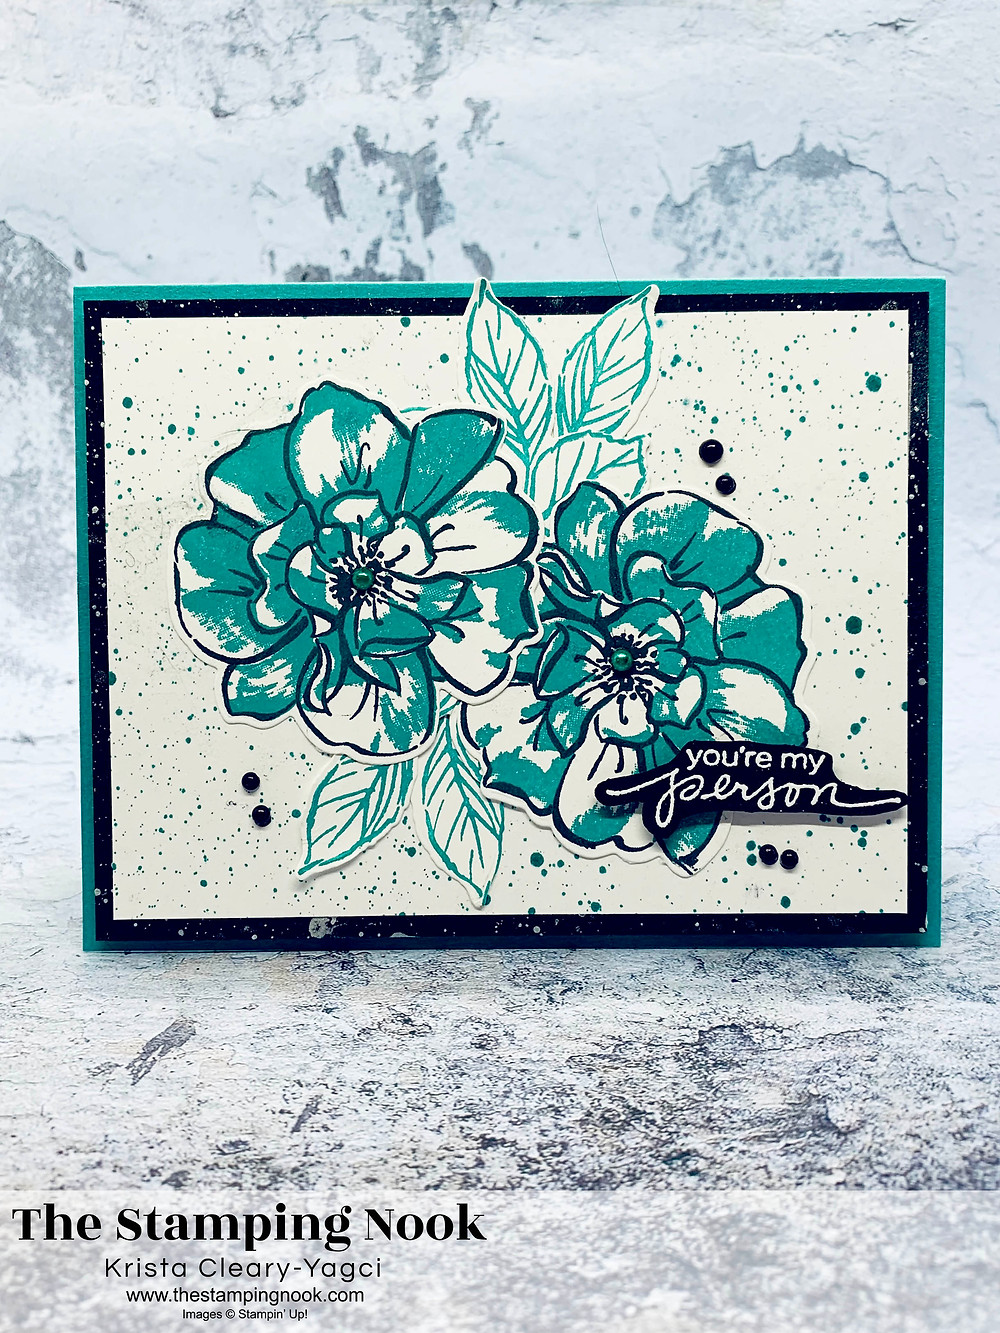 Stampin-Up-To-a-Wild-Rose-Ink-Splatter-Technique-The-Stamping-Nook-Krista-Cleary-Yagci-1 (14)